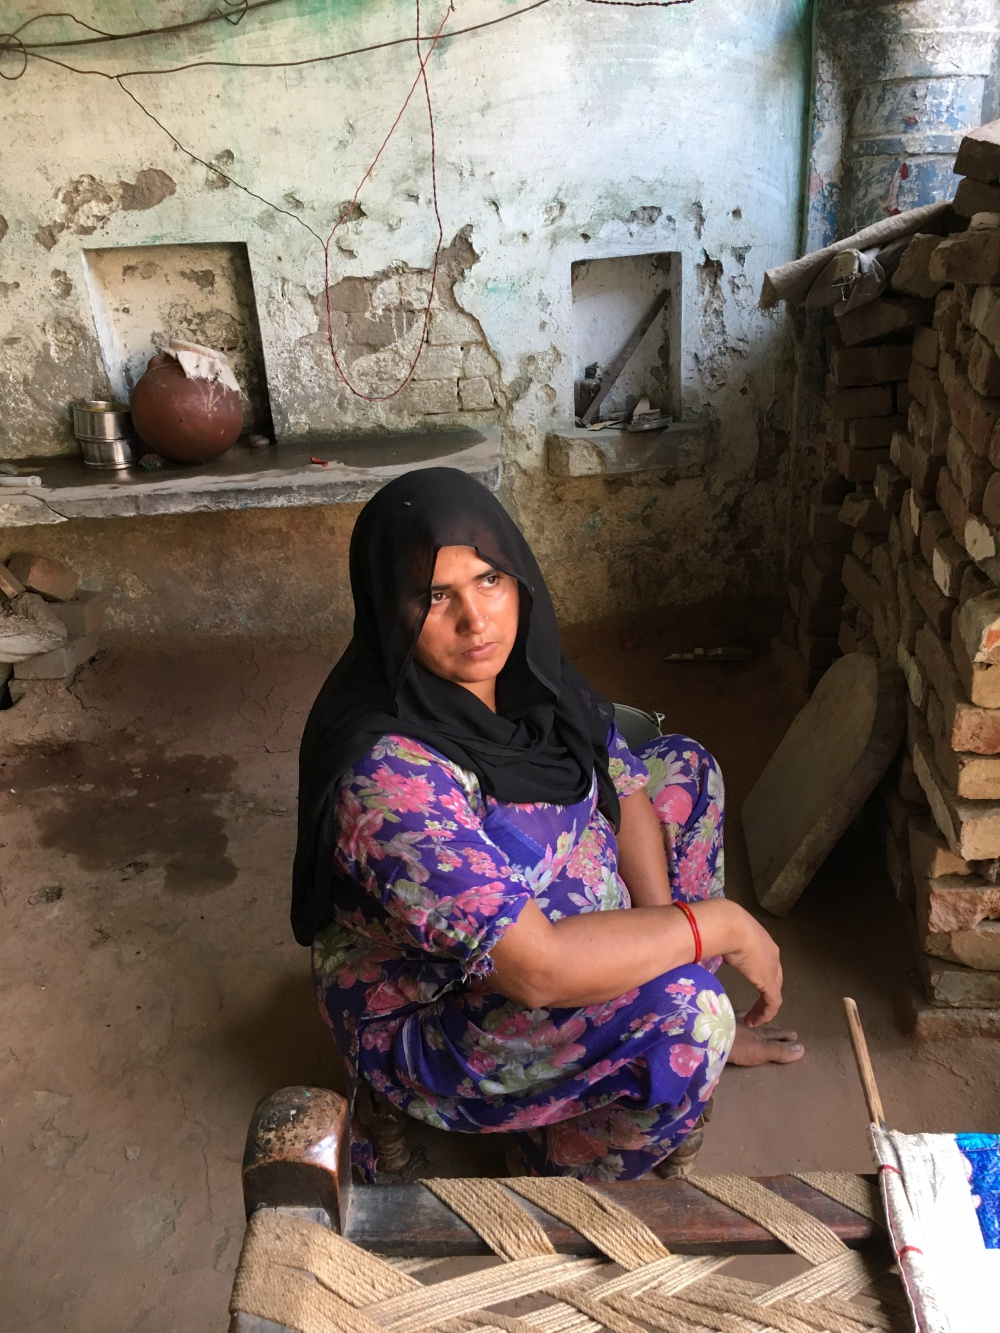 Meenu now faces the daunting task of repaying Rs 6 lakh of debt without any significant sources of income. Credit: Kabir Agarwal